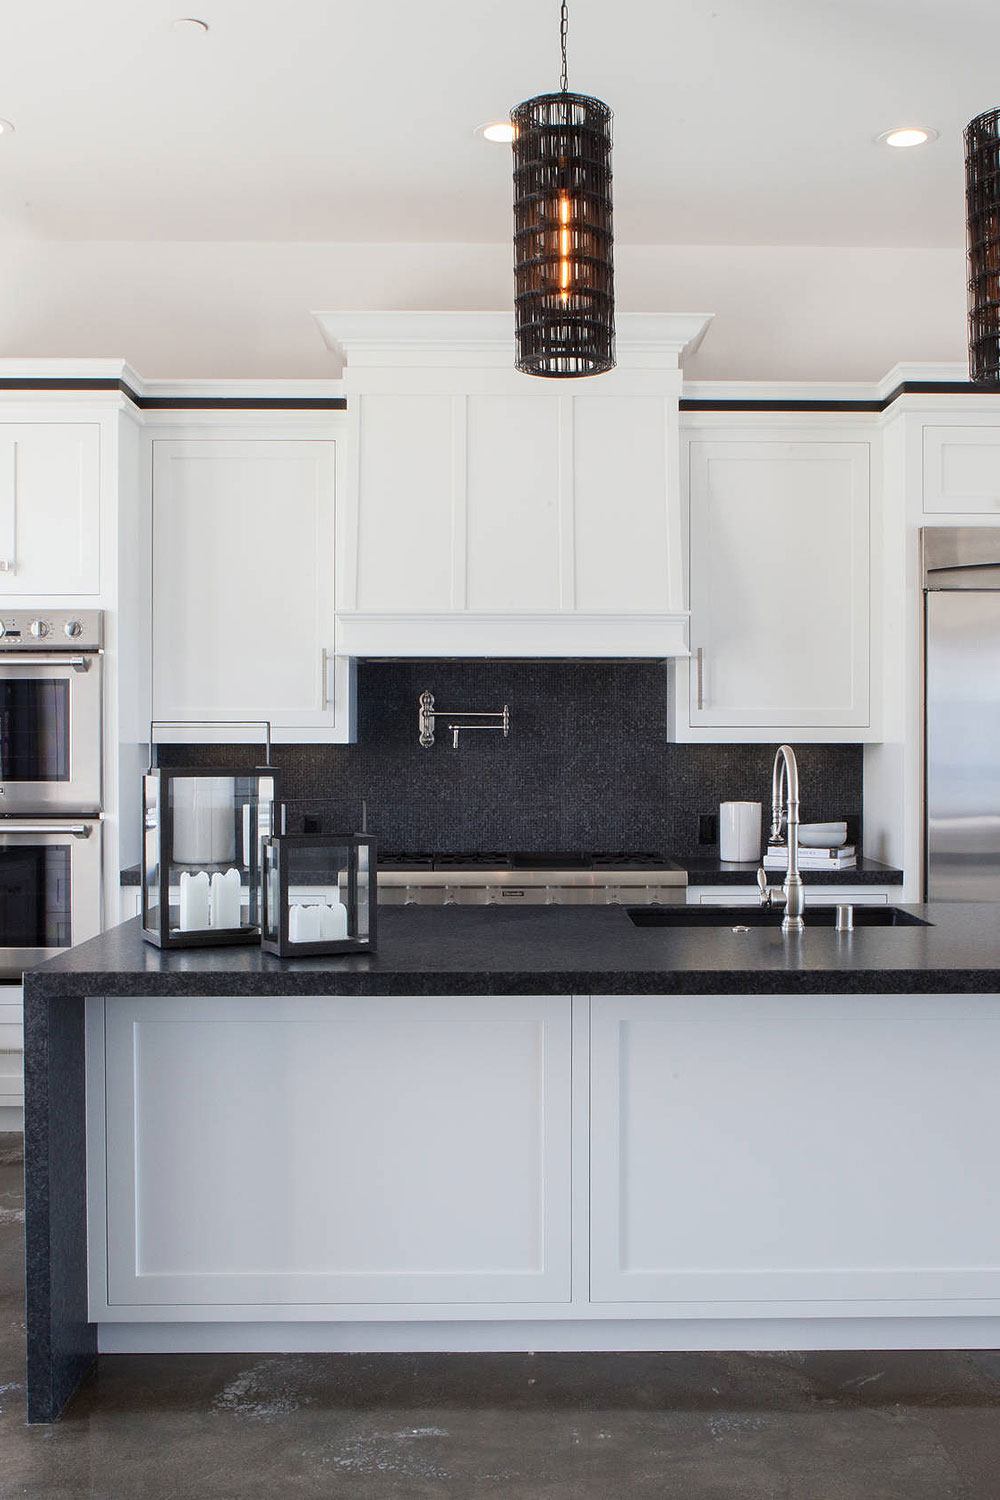 50+ Black Countertop Backsplash Ideas (Tile Designs, Tips ... on Backsplash For Black Granite Countertops And White Cabinets  id=52583